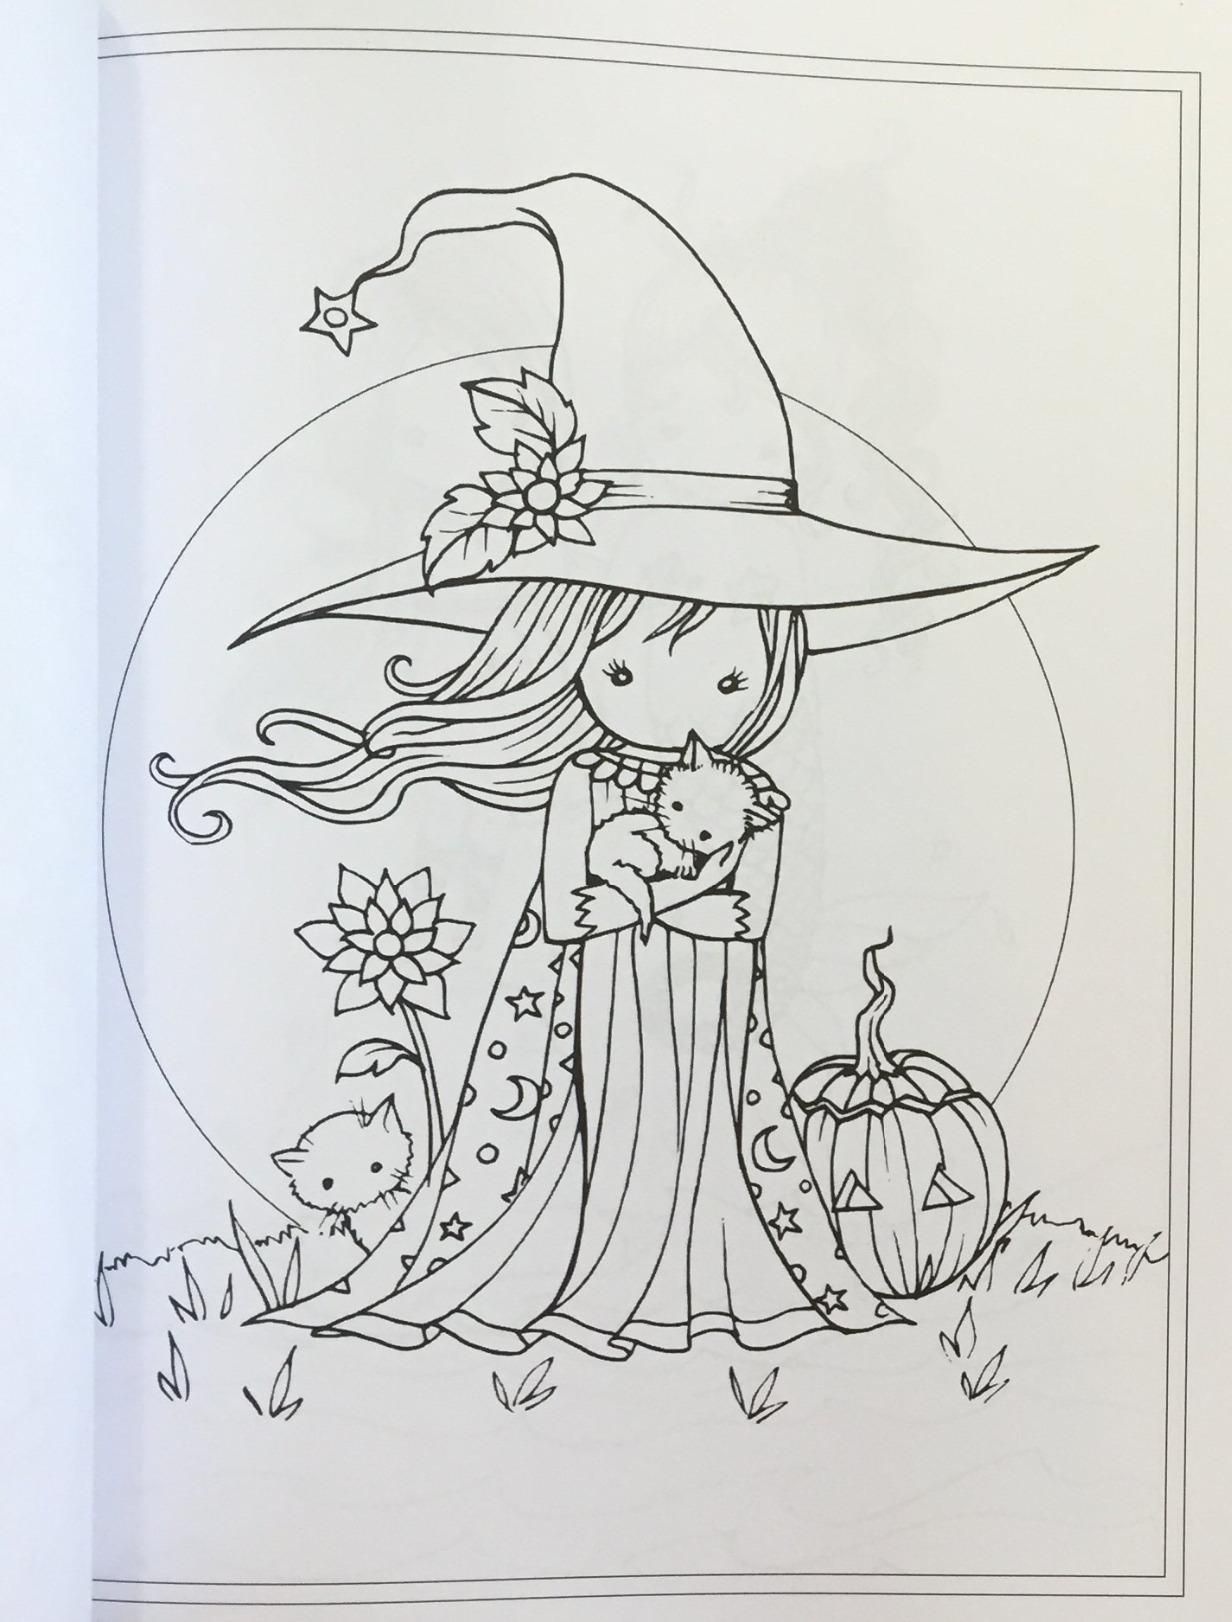 Whimsical designs coloring book - Whimsical World 2 Coloring Book Fairies Mermaids Witches Angels And More